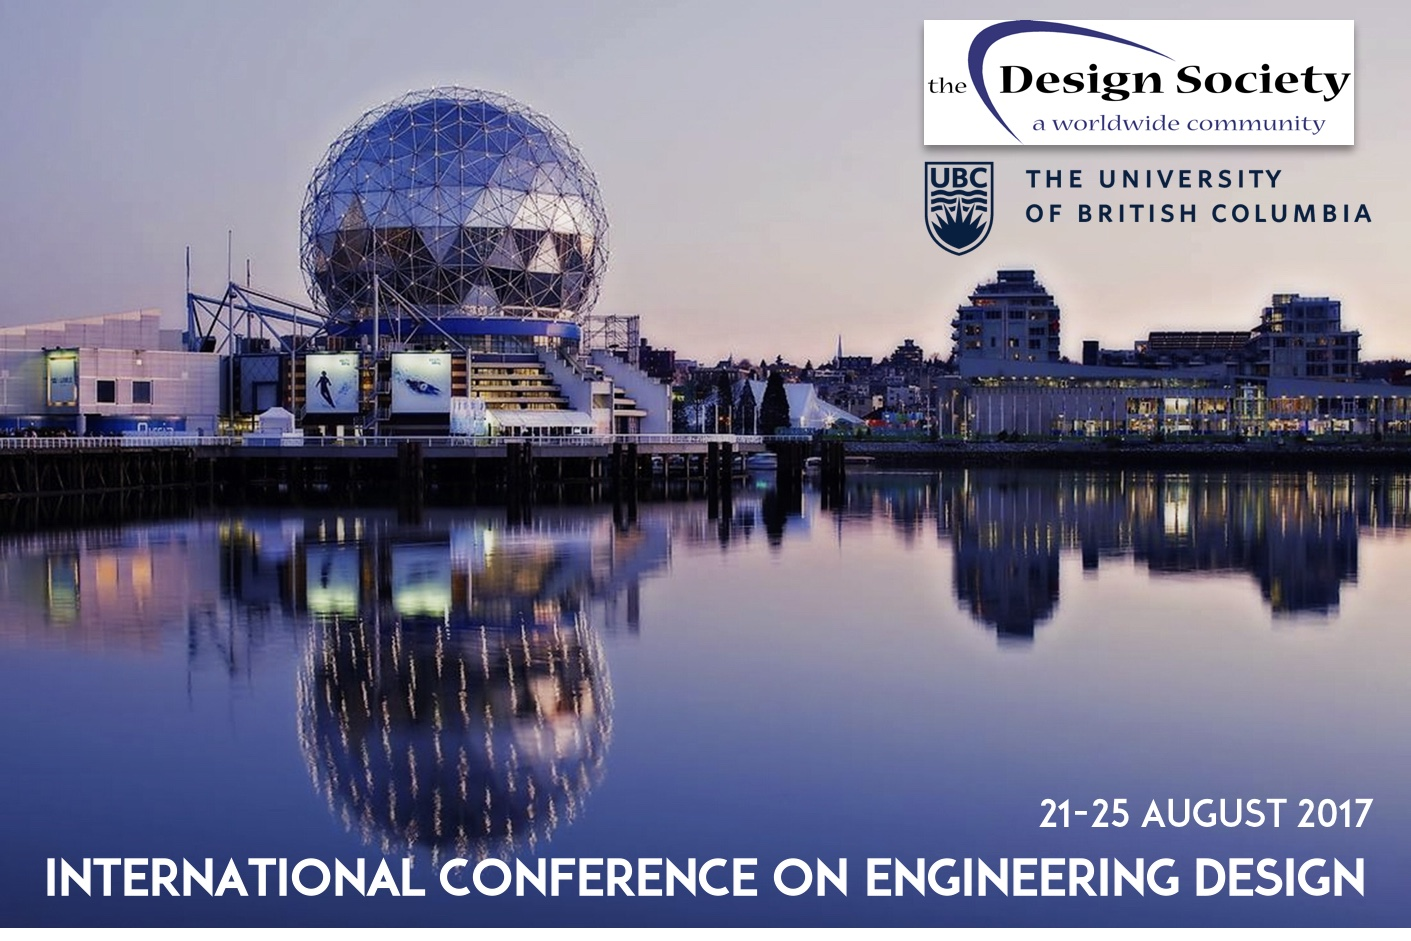 Bth Pdrl At The 21st International Conference On Engineering Design 2017 Product Development Research Lab